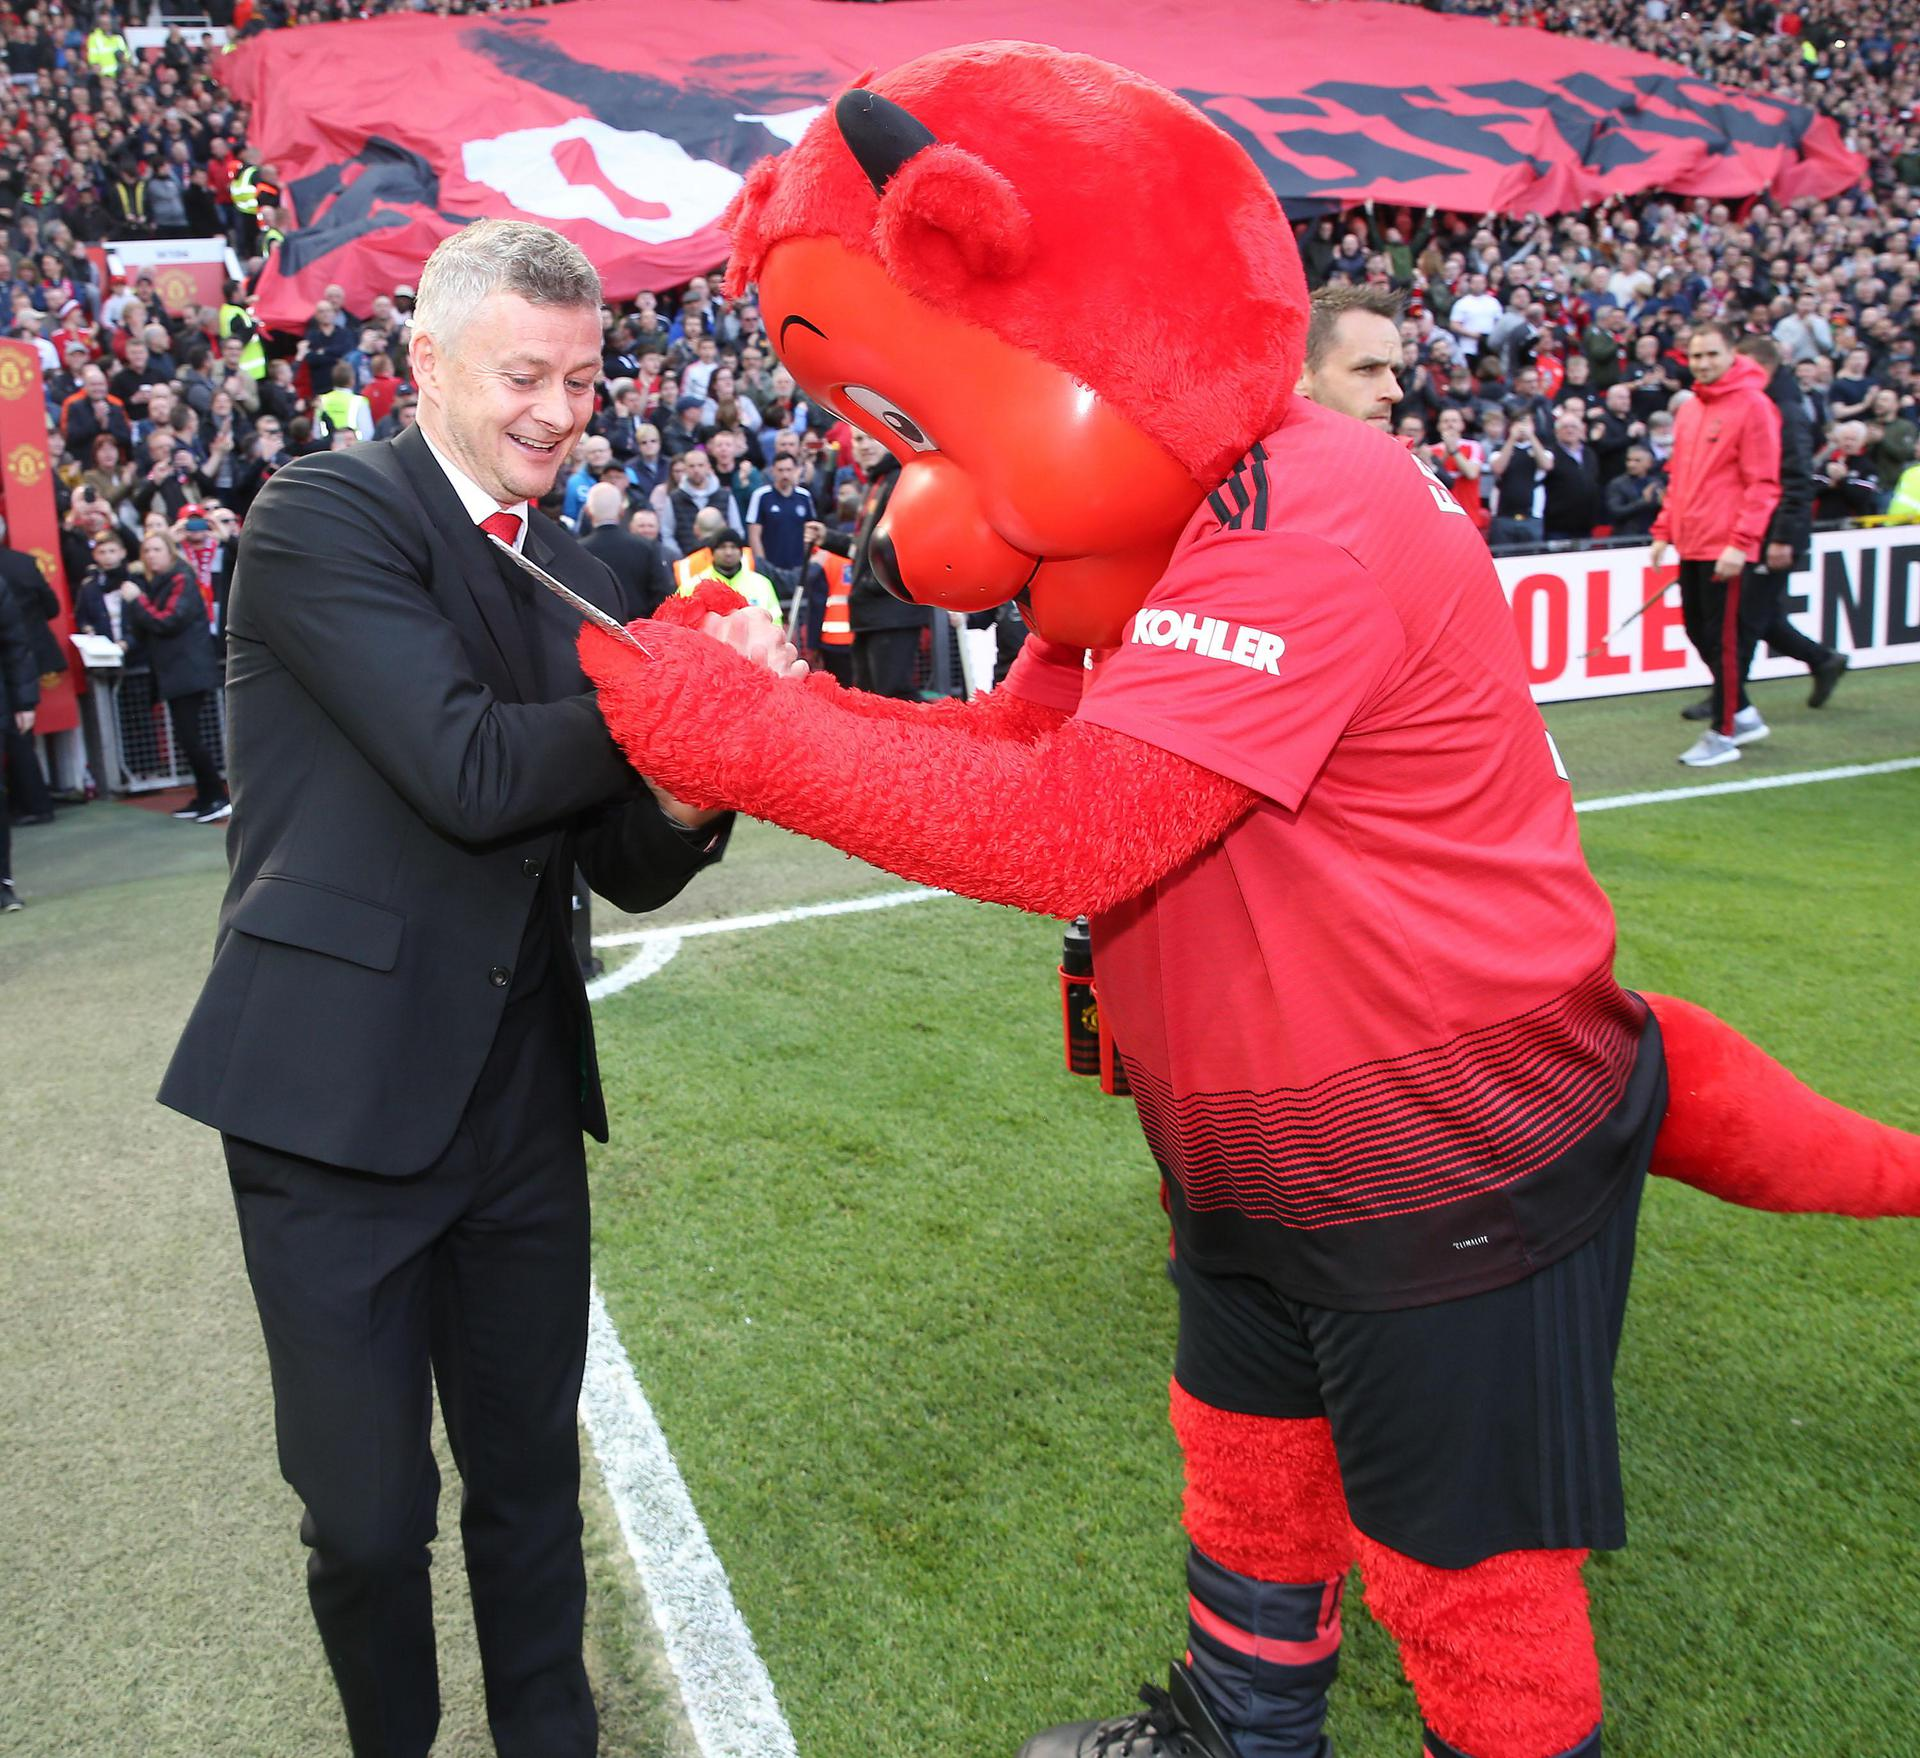 Ole and Fred The Red